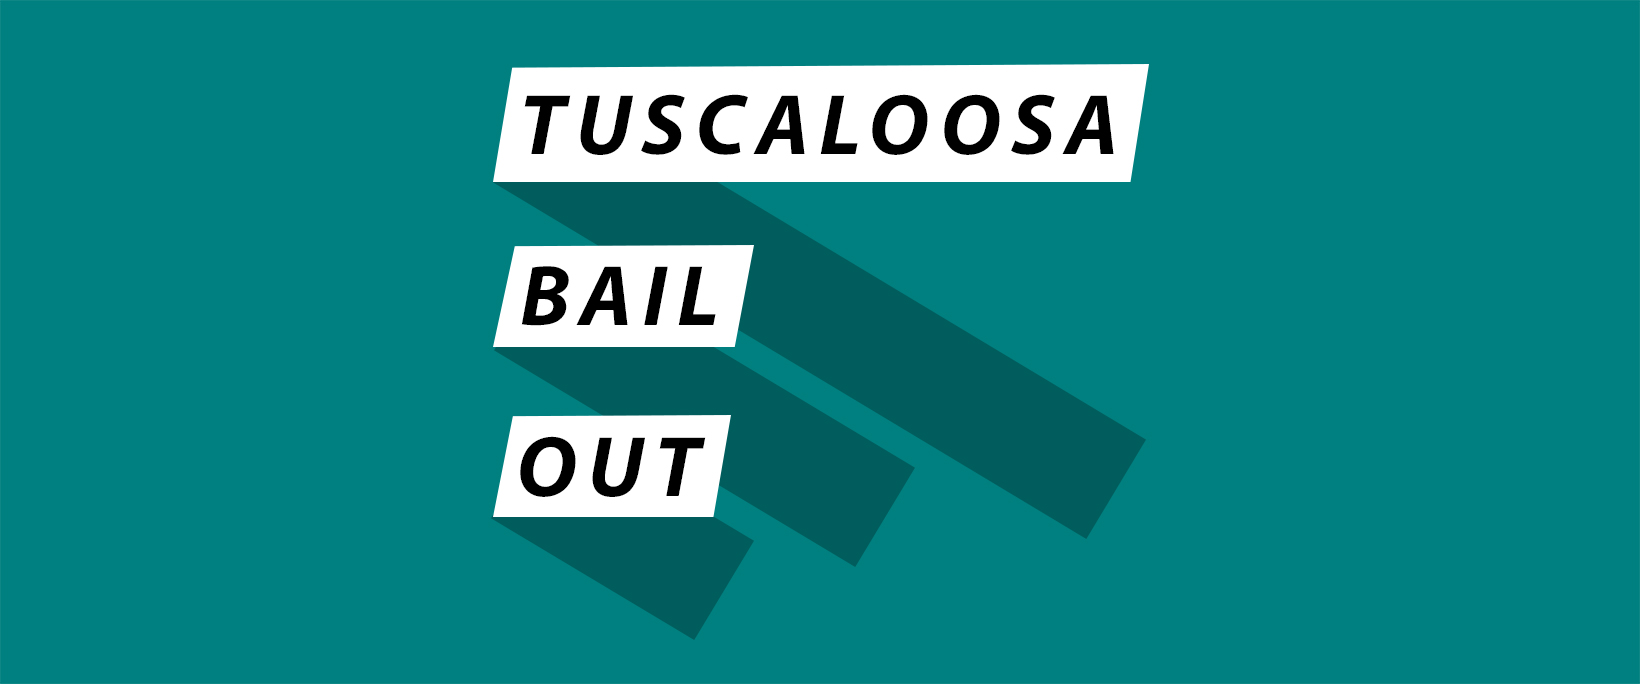 Tuscaloosa Bail Out - A Bail Fund